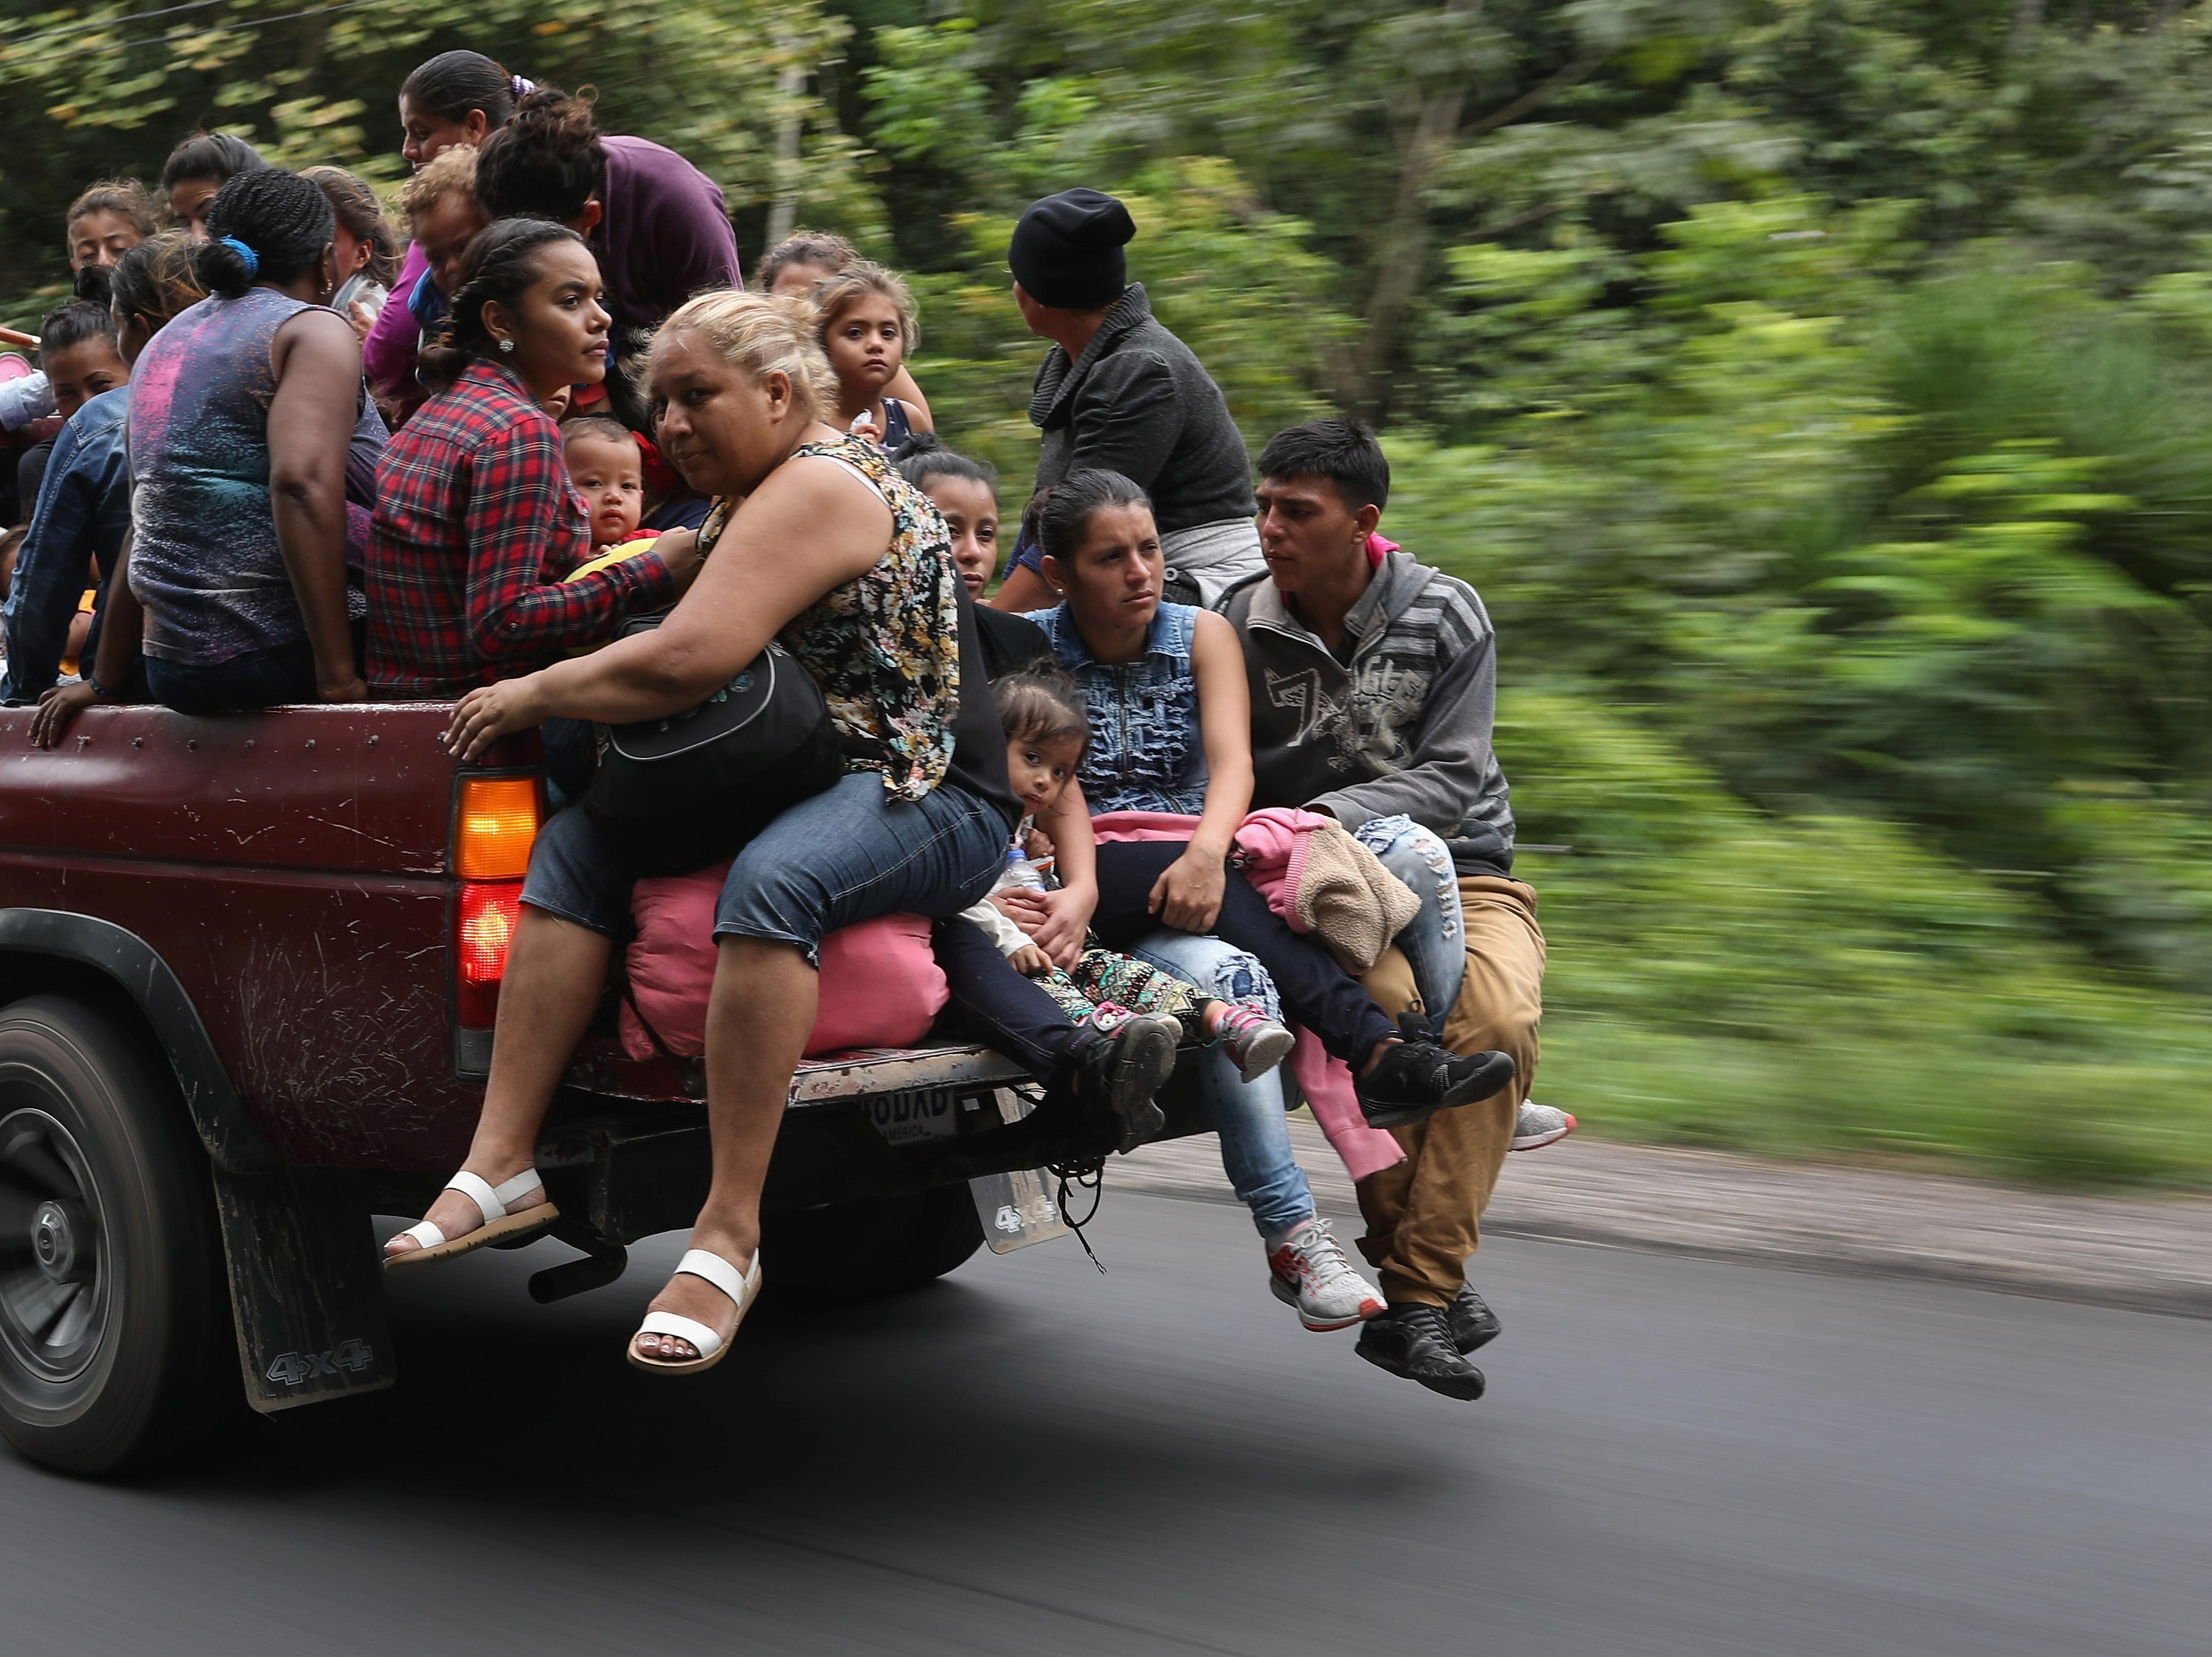 QUEZALTEPEQUE, GUATEMALA - OCTOBER 16:  Honduran immigrants, some of more than 1,500 people traveling in a migrant caravan, move north on October 16, 2018 near Quezaltepeque, Guatemala. A caravan of Central Americans, the second of its kind in 2018, began in San Pedro Sula, Honduras with plans to march north through Guatemala and Mexico in route to the United States. Honduras has some of the highest crime and poverty rates in Latin America. (Photo by John Moore/Getty Images)